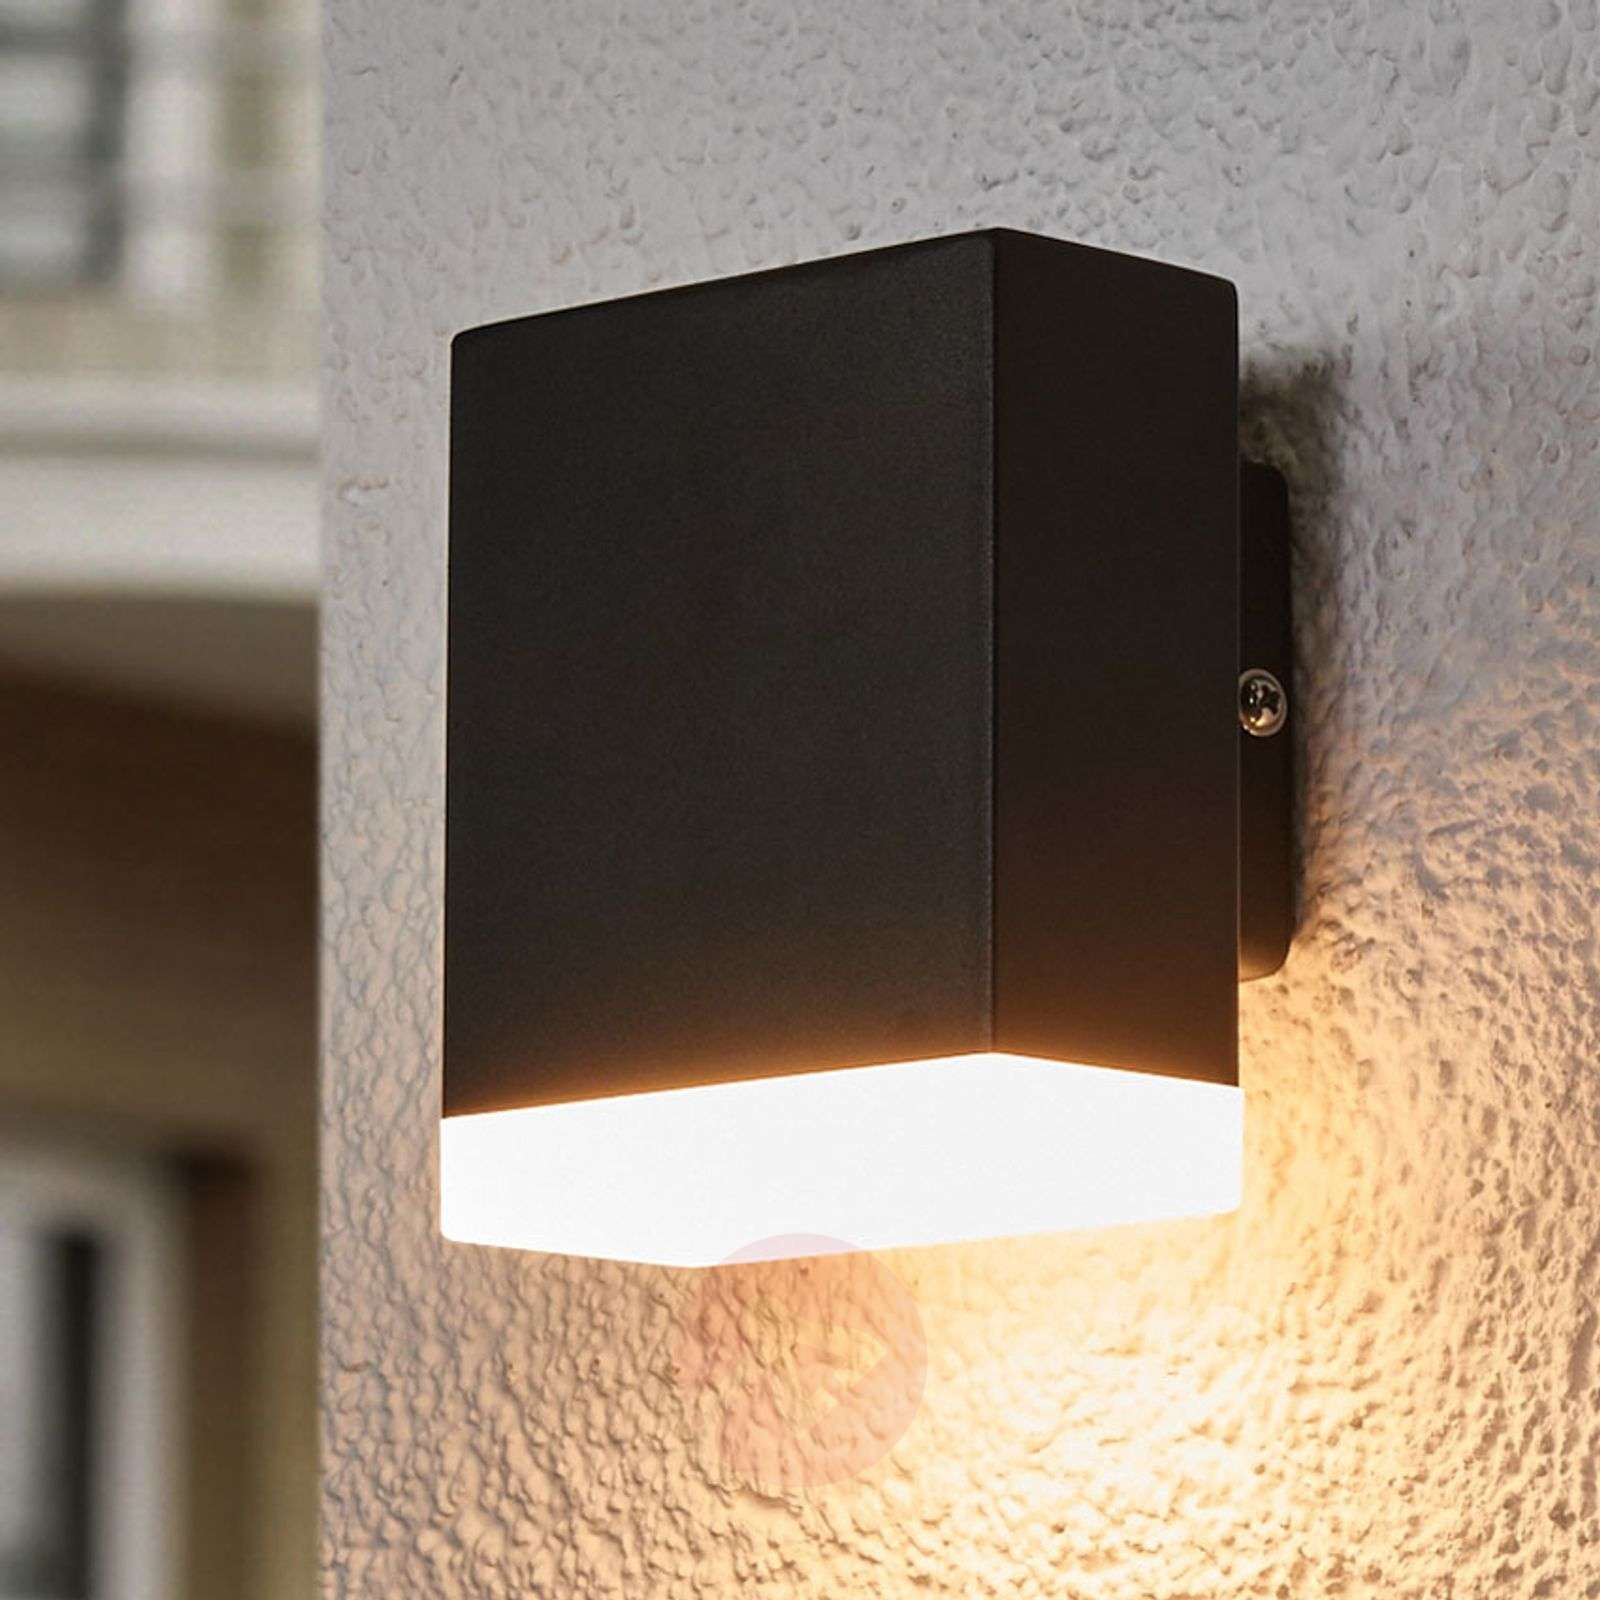 Modern LED outdoor wall l& Aya in black-9988100-02 ... & Modern LED outdoor wall lamp Aya in black | Lights.co.uk